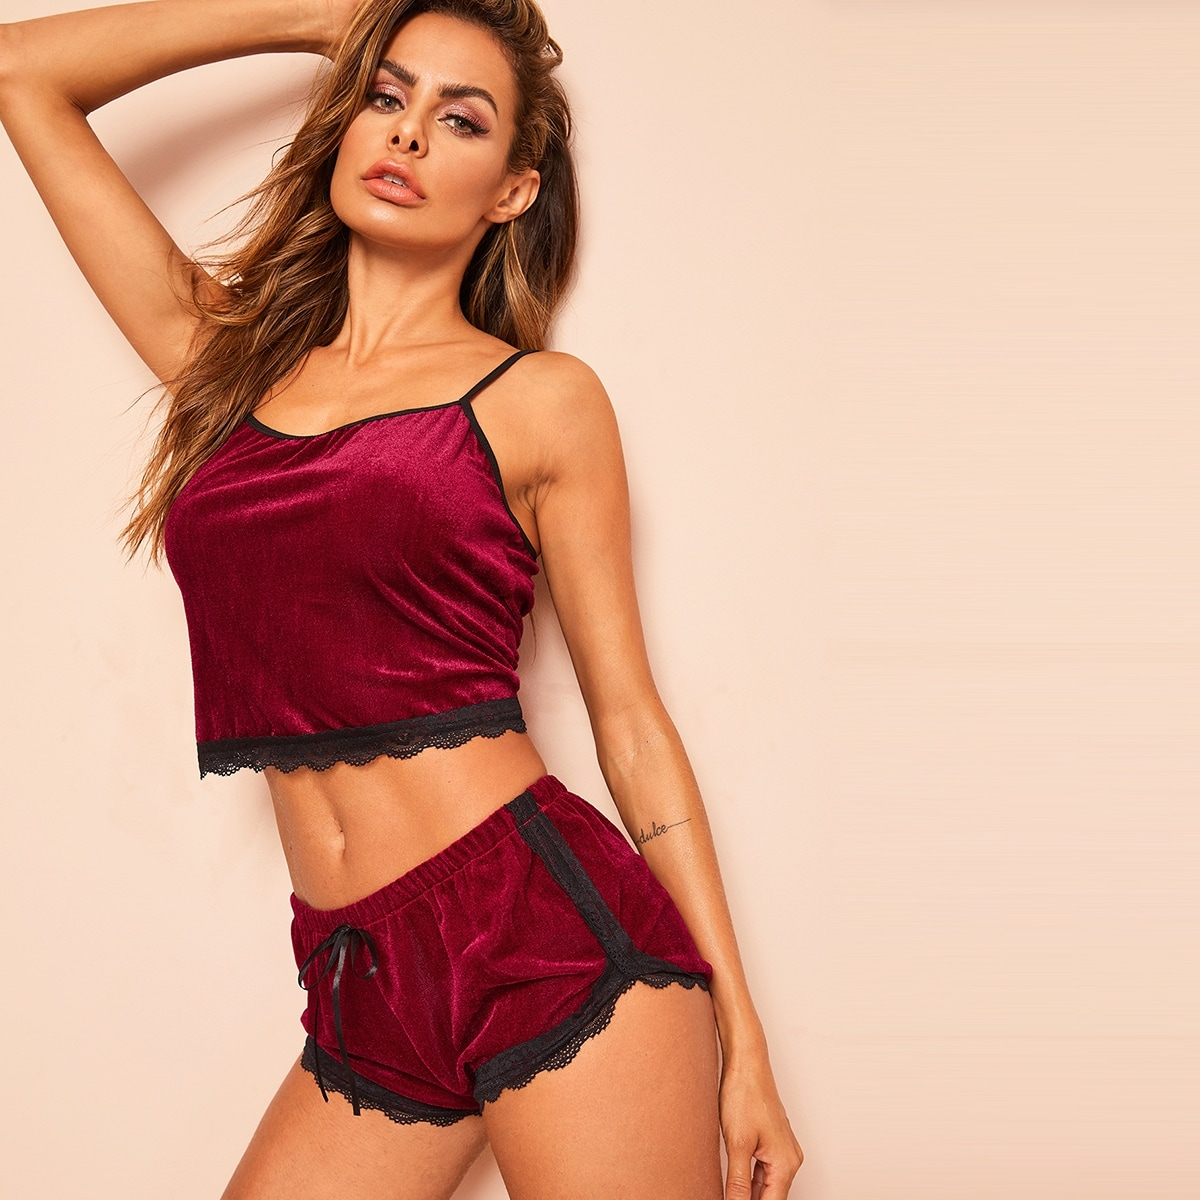 Bordeaux Sexy Lounge kleding Contract kant